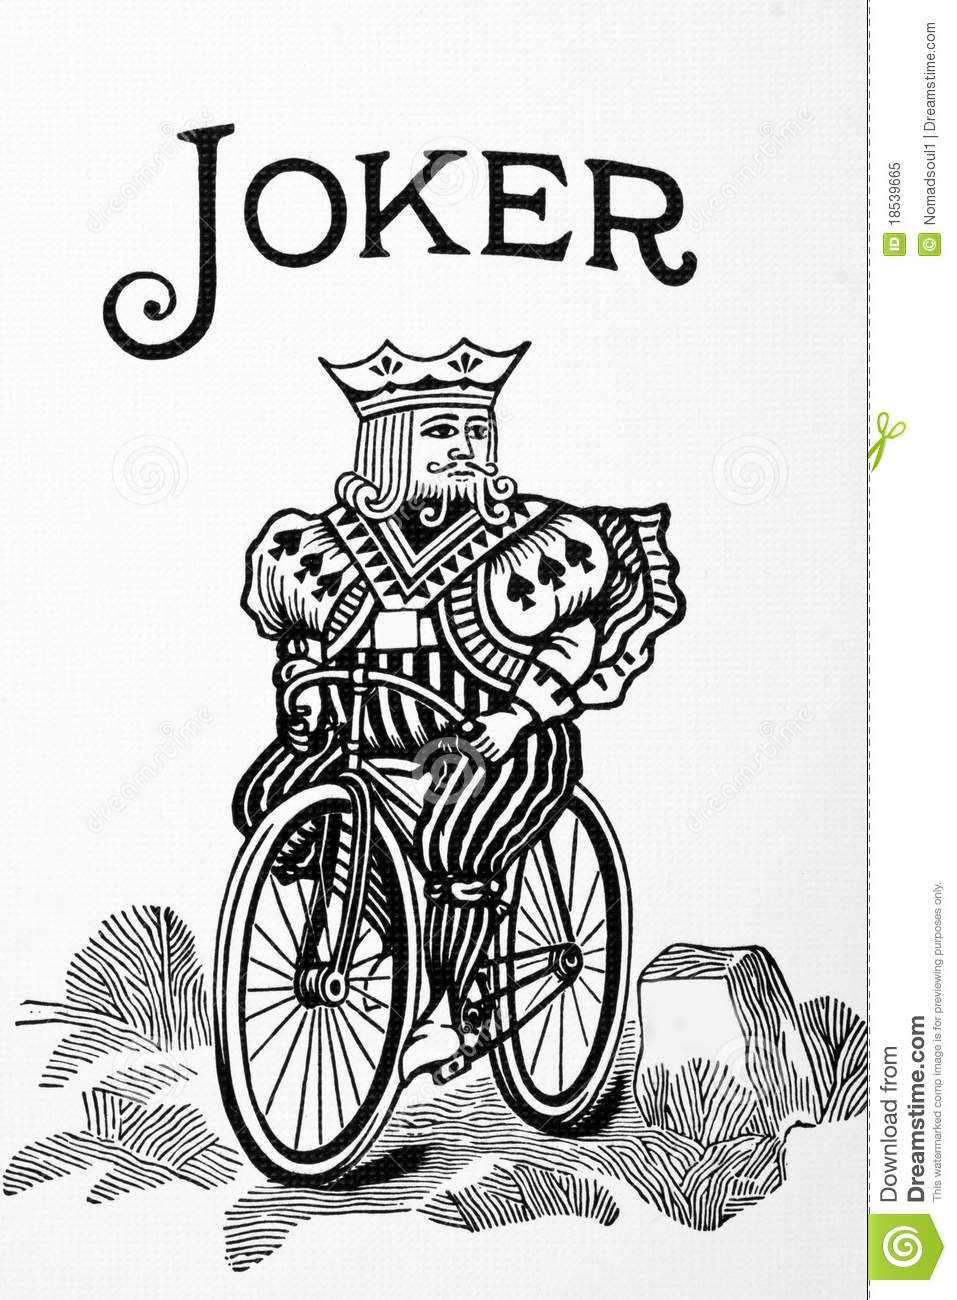 Joker card stock image Image of large chance picture